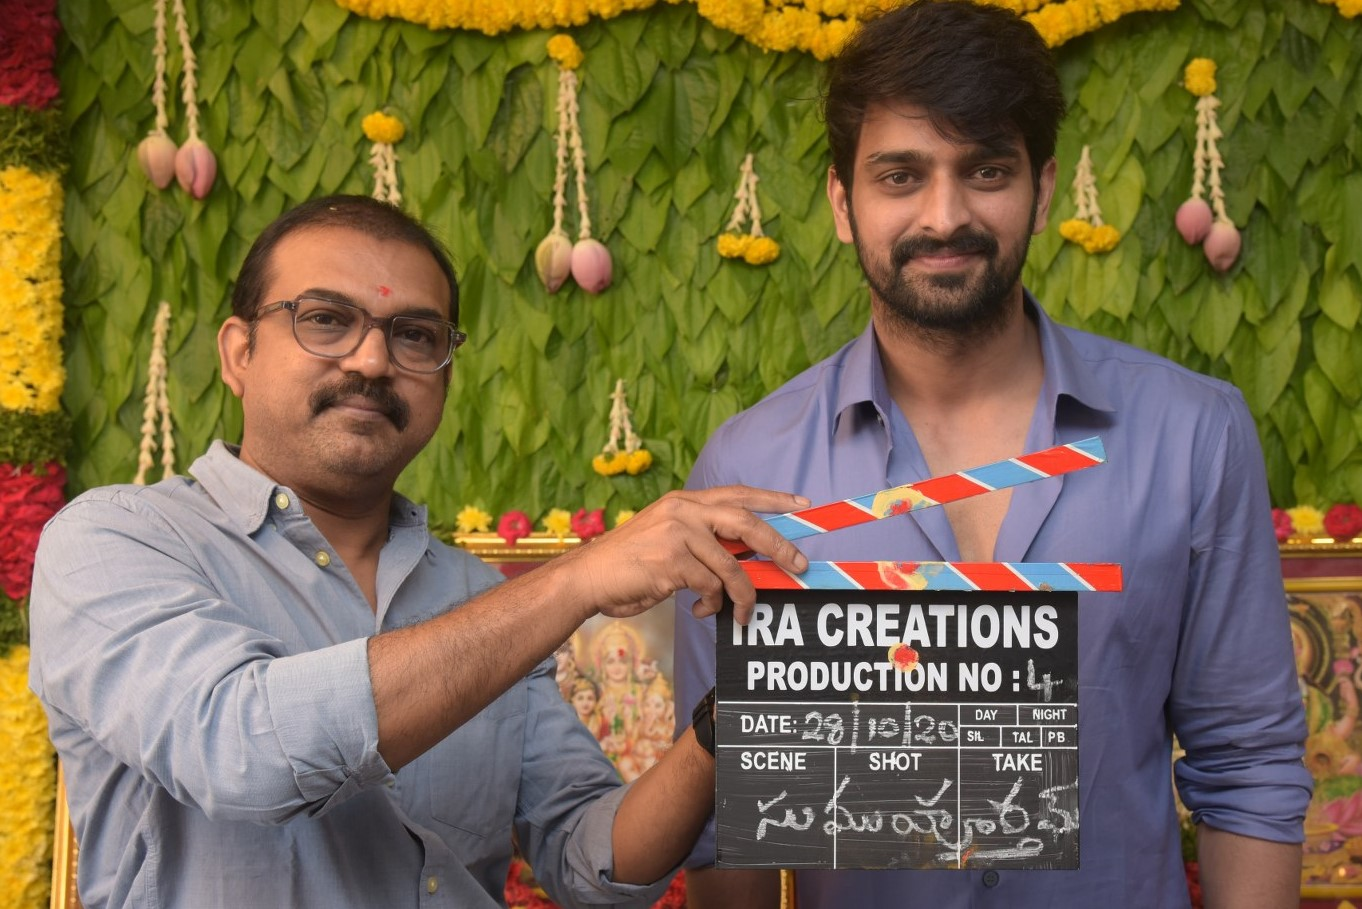 IRA Creations Production no 4 Movie opening